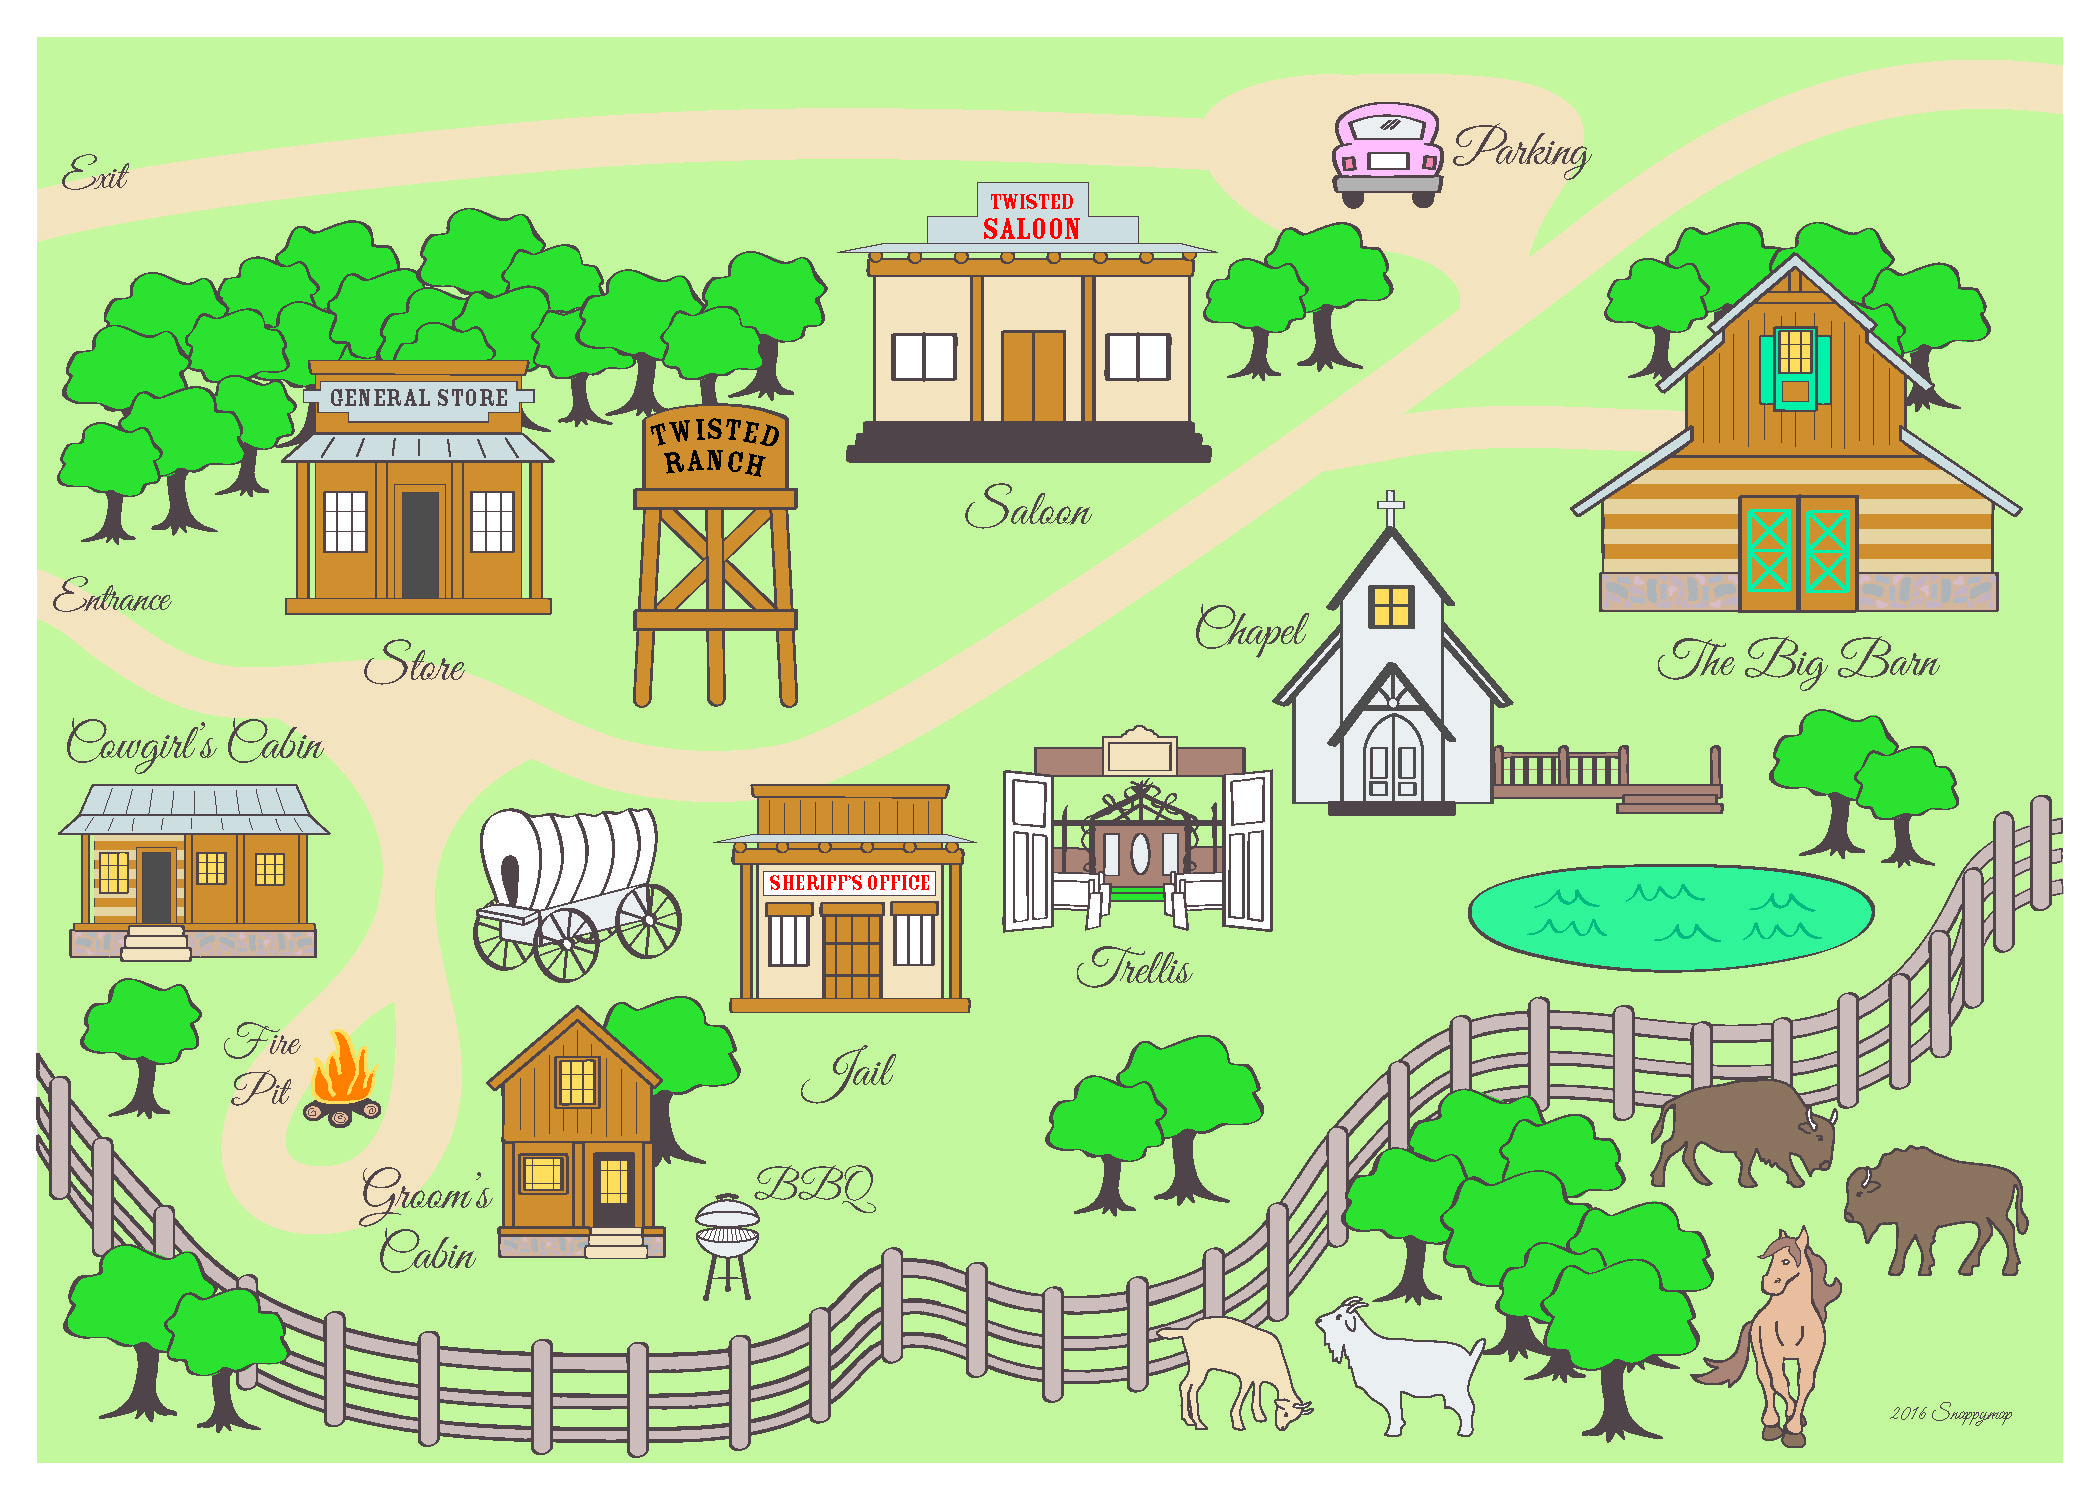 Ranch Business Map